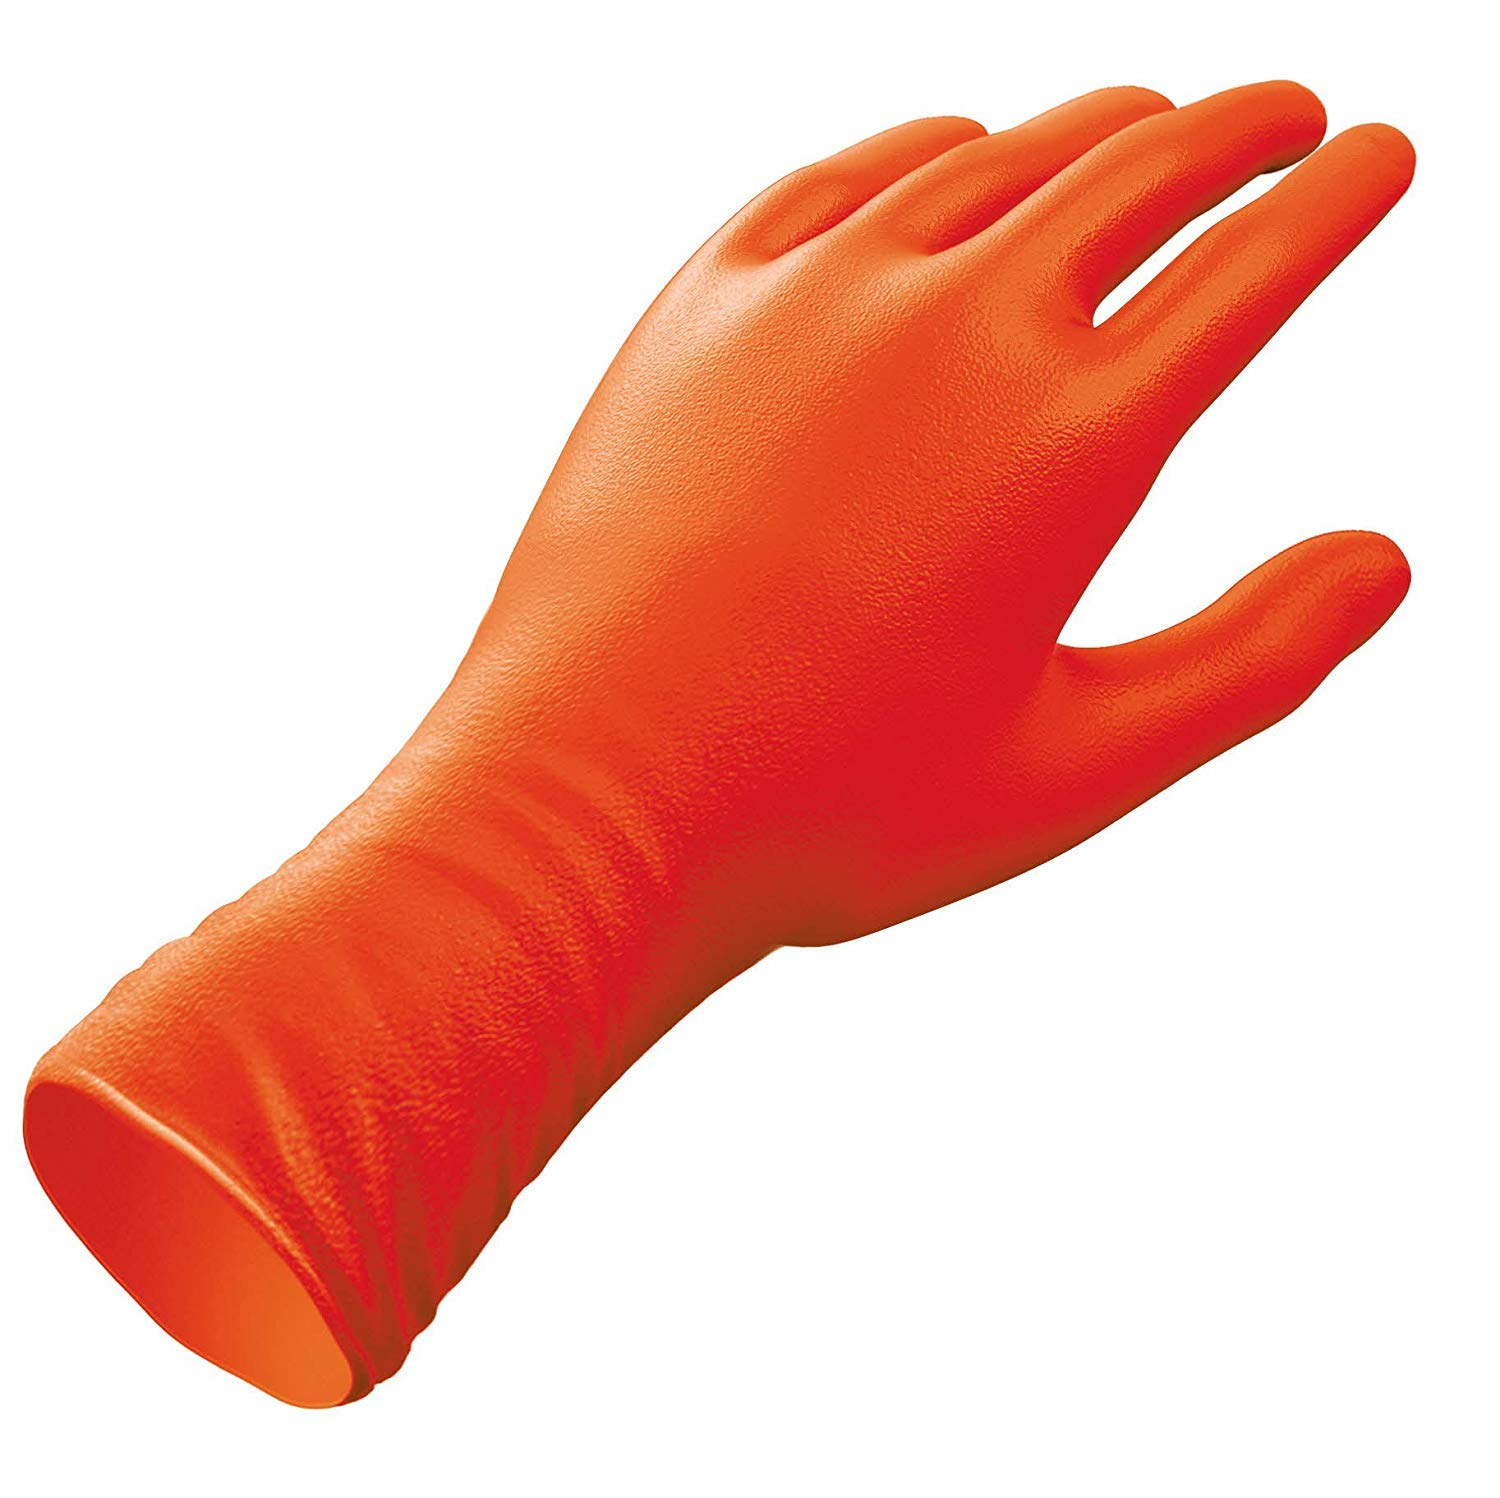 Venom Steel Sportsman Nitrile Gloves with 12 inch Cuff, 6 mil Rip Resistant Field Dressing Gloves, One Size Fits Most (12 Count), Great for use as Game Cleaning Gloves, Fishing, Hunting (Fоur Расk) by Venom Steel (Image #2)